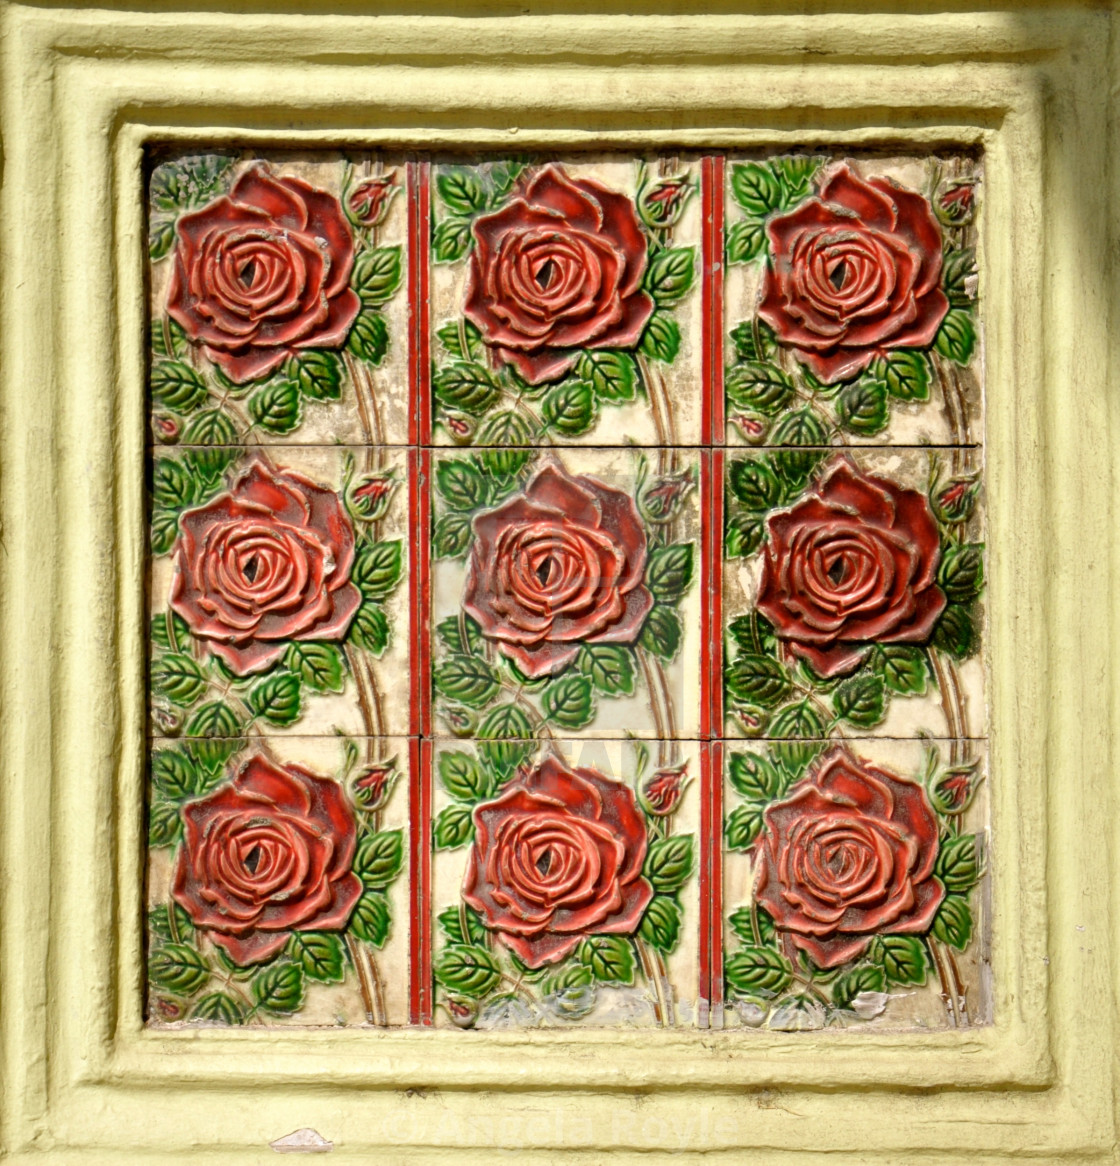 Red Rose Ceramic Tiles License Download Or Print For 4 96 Photos Picfair